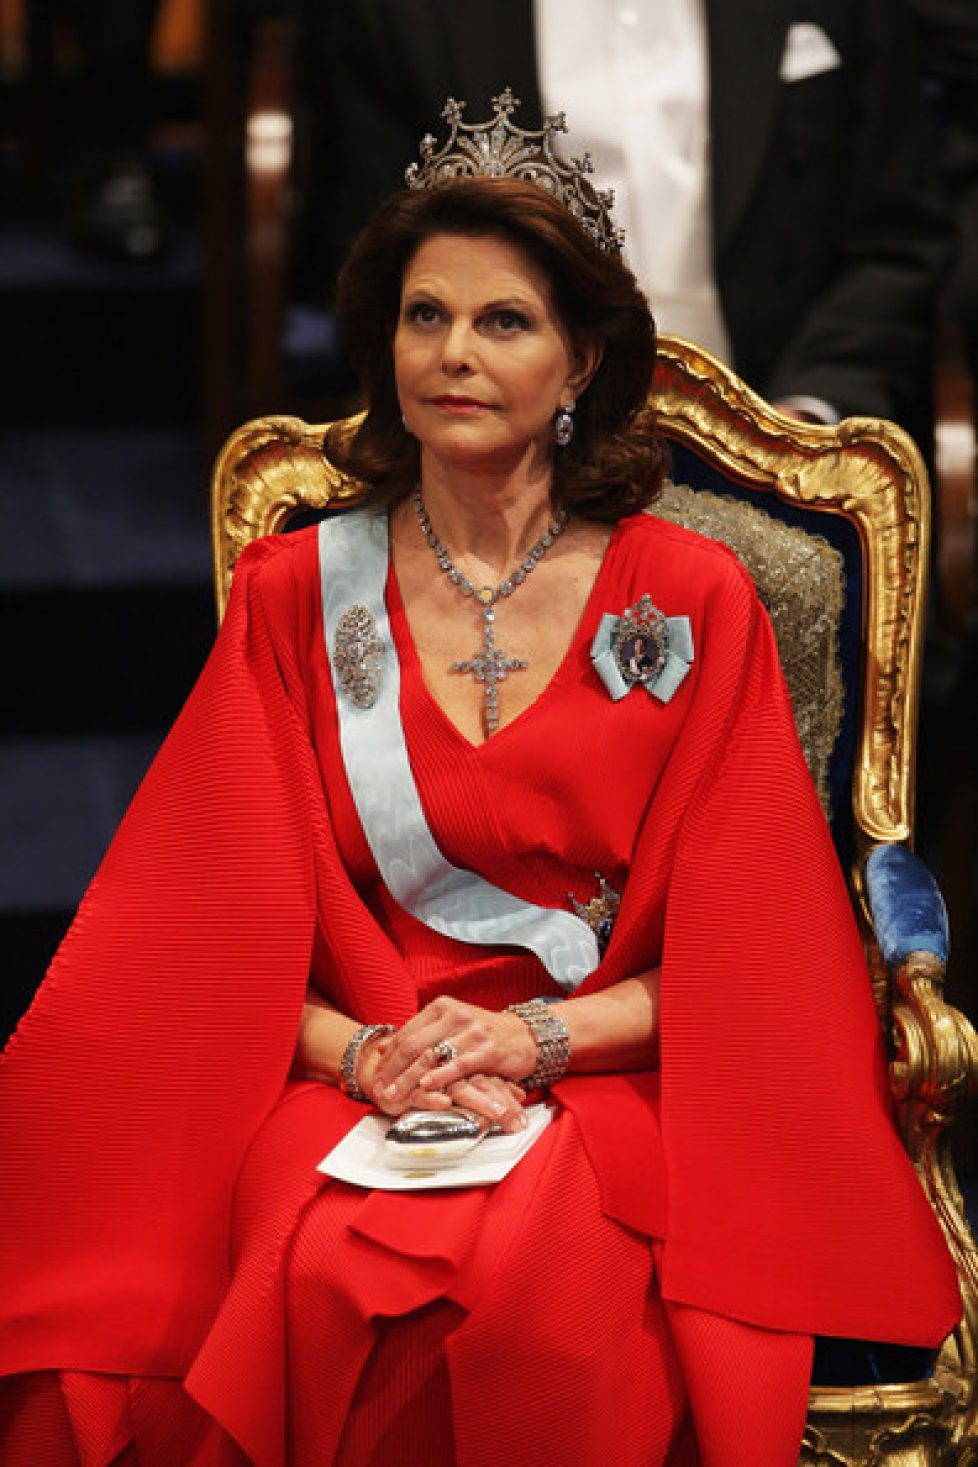 Queen+Silvia+Nobel+Foundation+Prize+2007+Awards+oCcx-Z1Lszol